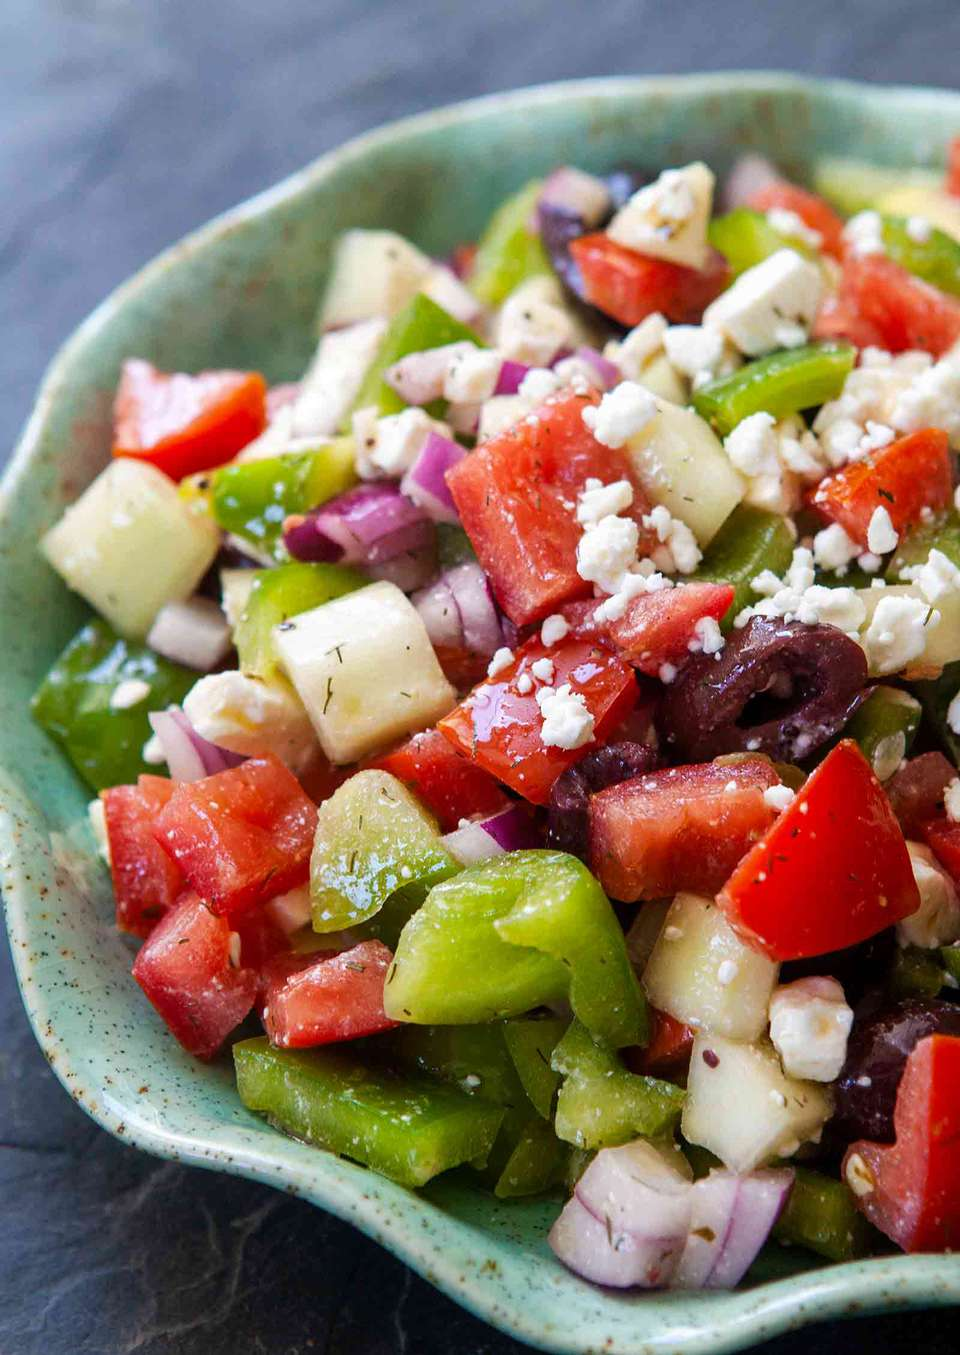 Easy Greek Salad with tomatoes, cucumbers, onions, bell peppers, olives, and feta cheese